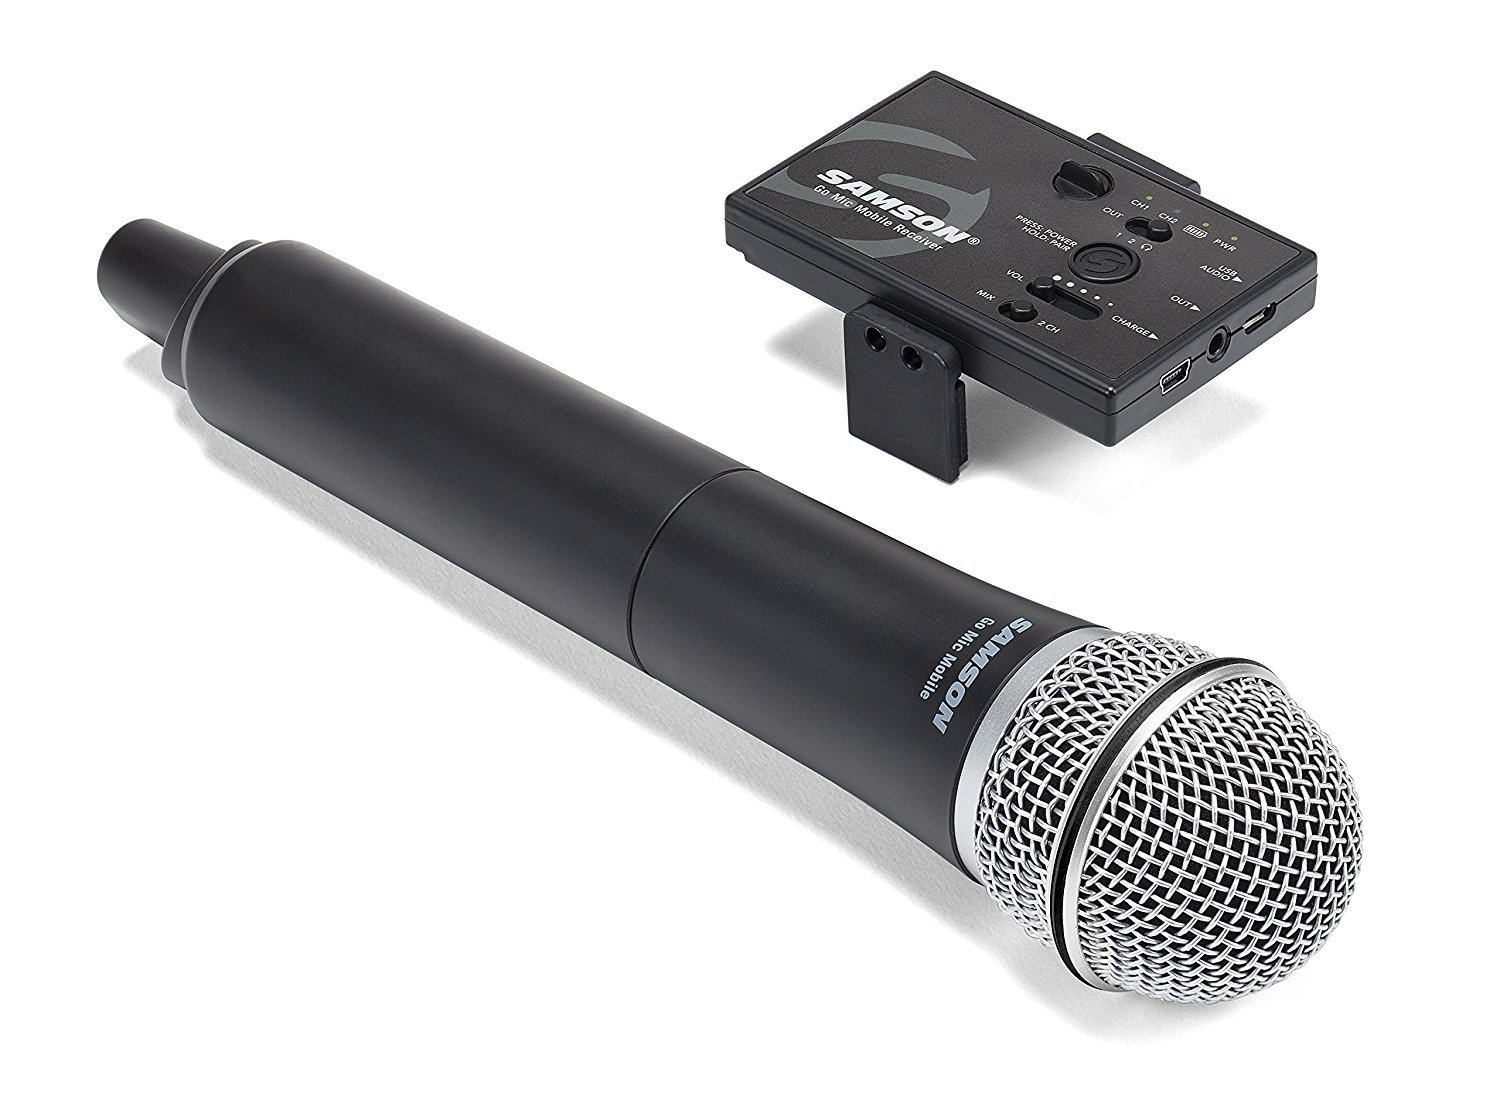 f7a73018b8ff Amazon.com: Samson Go Mic Mobile Professional Handheld Wireless System for  Mobile Video: Musical Instruments